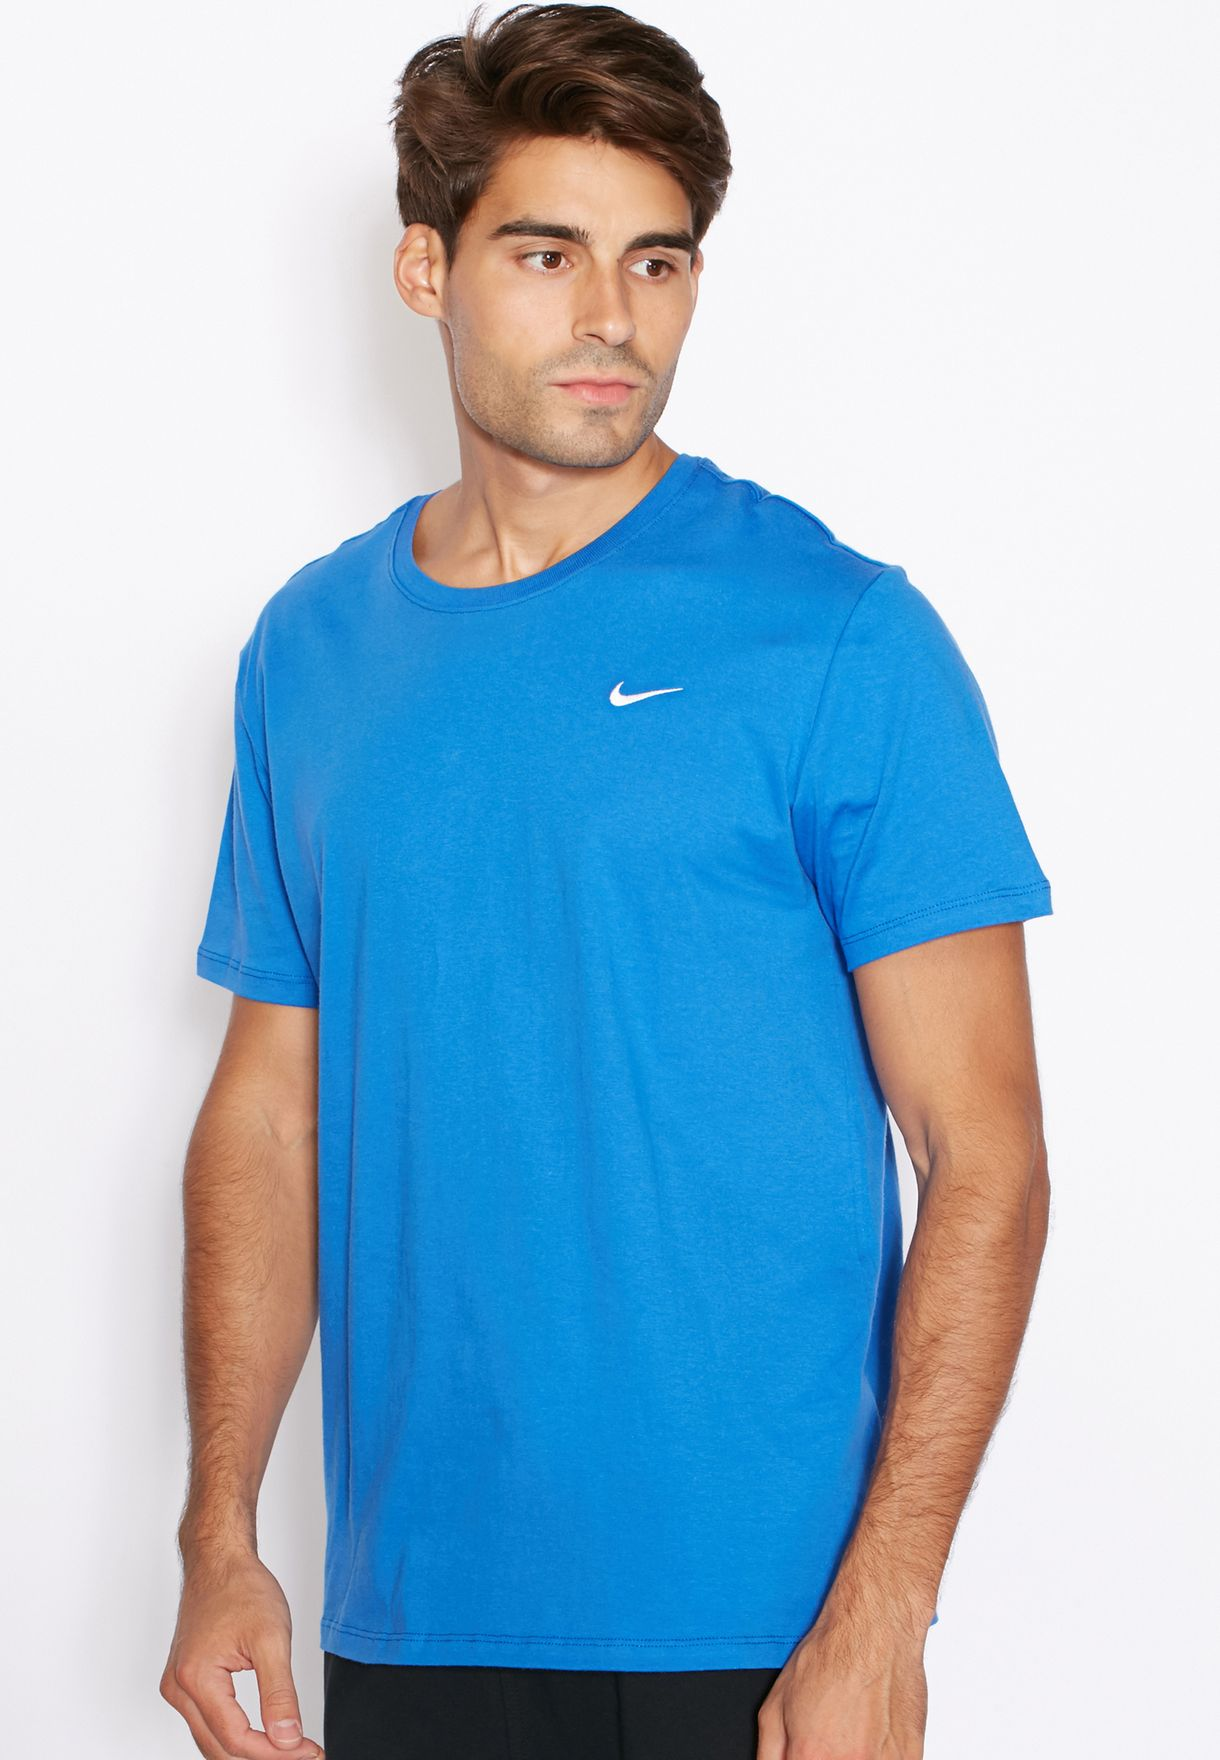 9c69946b Shop Nike blue Embroidery Swoosh T-Shirt 707350-463 for Men in UAE ...